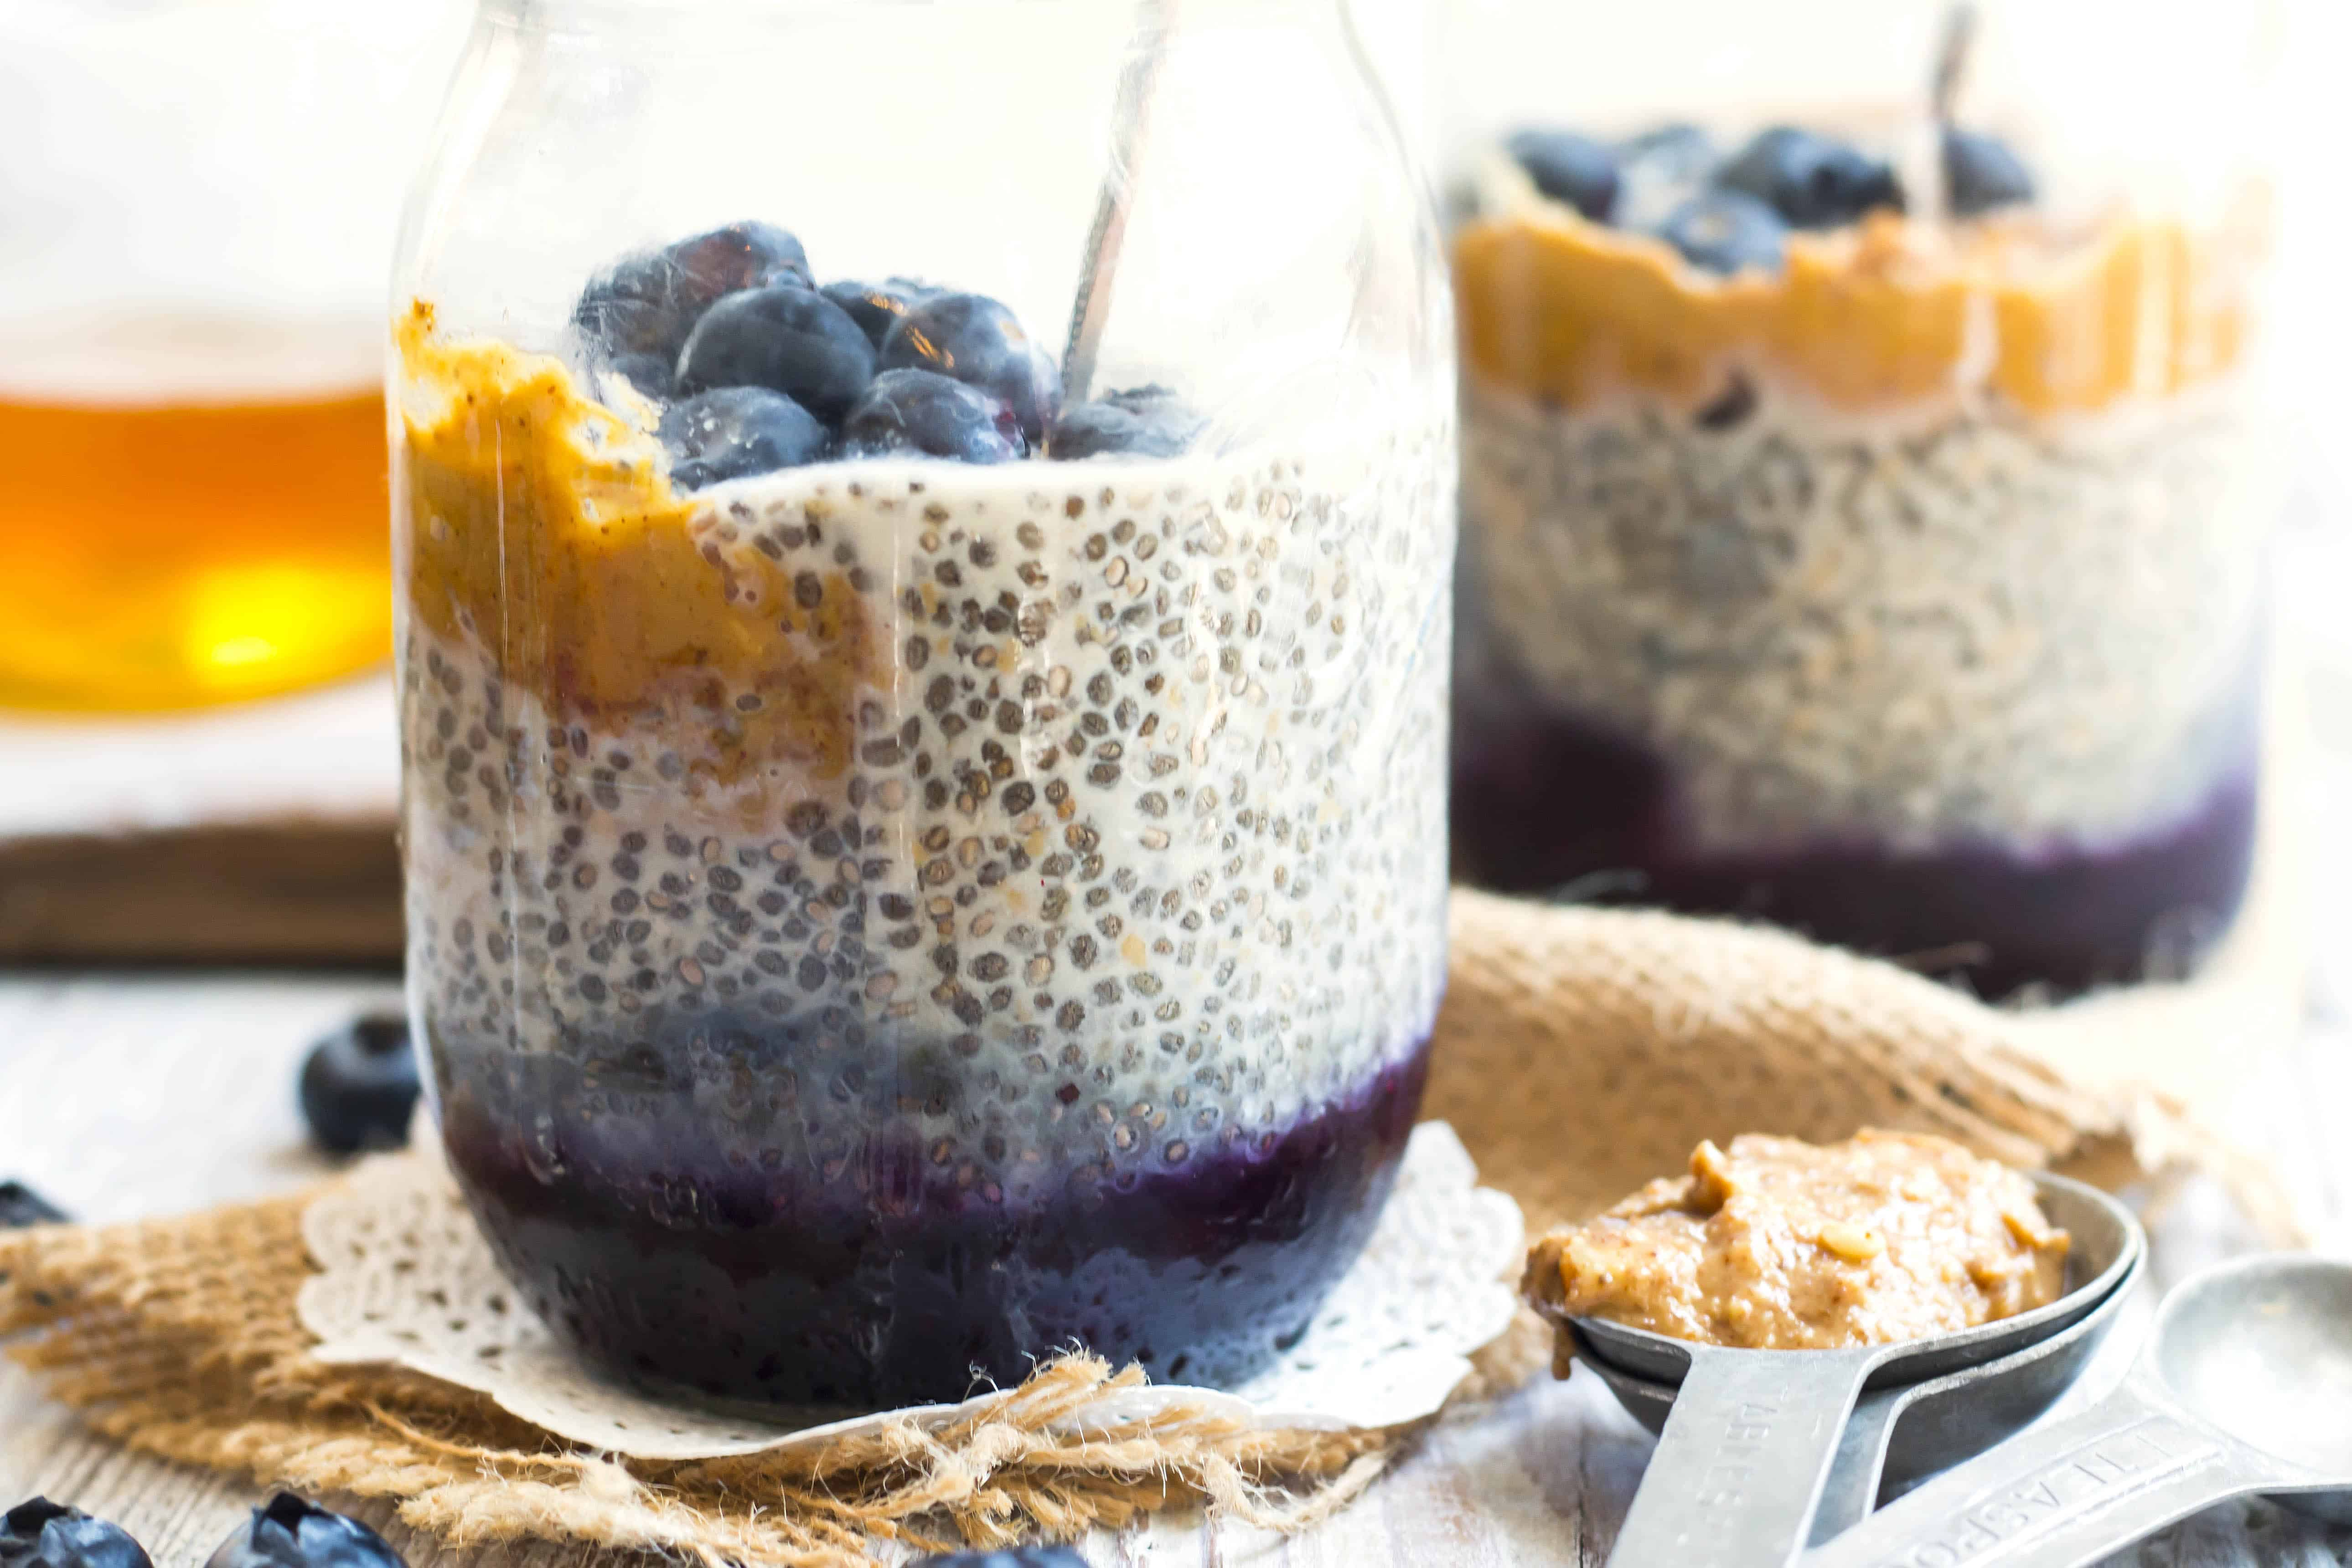 A jar filled with gluten-free chia seed pudding with peanut butter and jelly for a healthy breakfast.